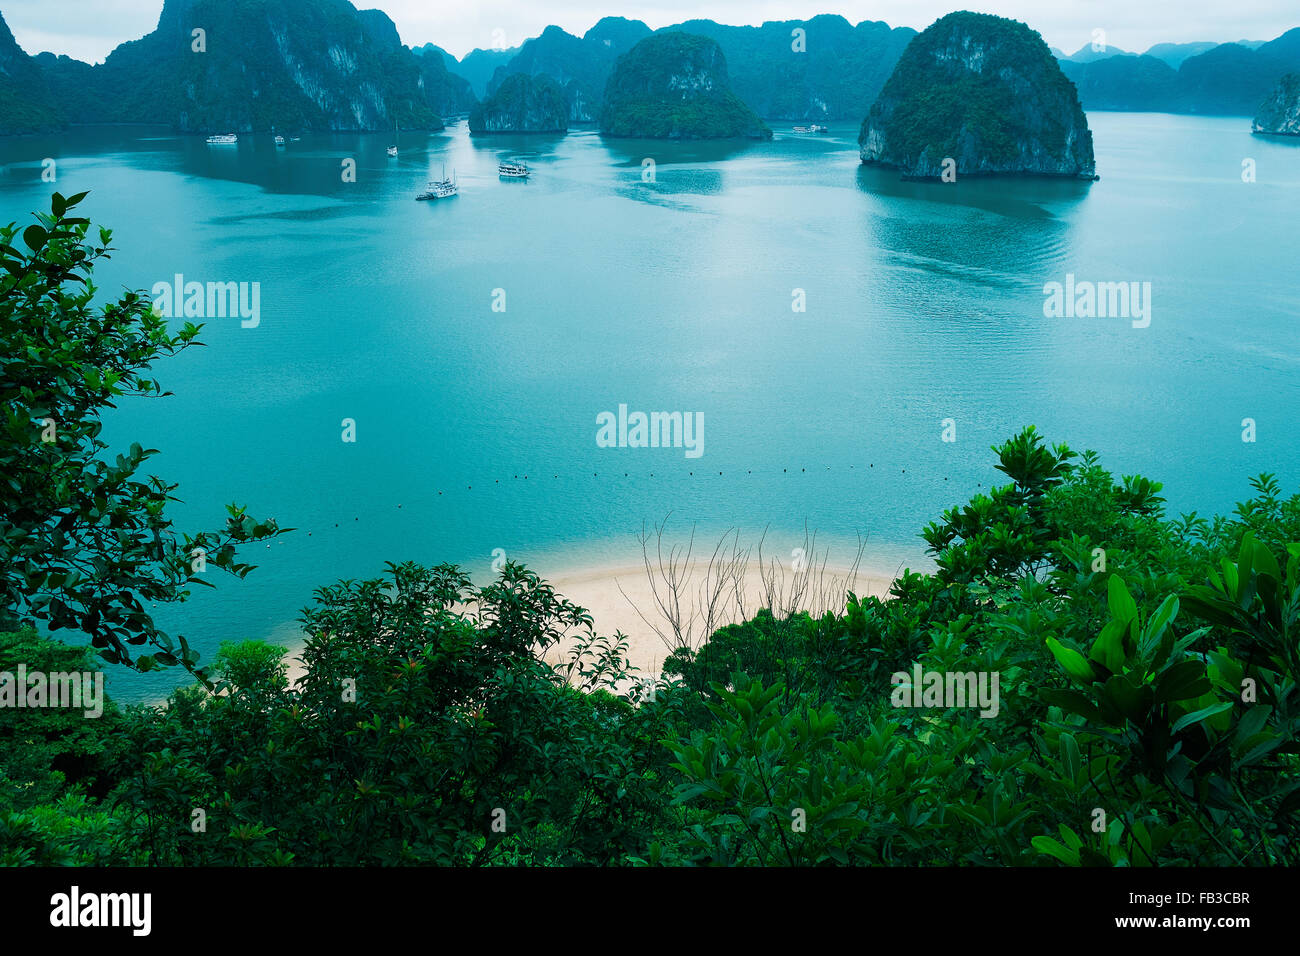 Islands and beach in Halong Bay, Vietnam, Southeast Asia - Stock Image